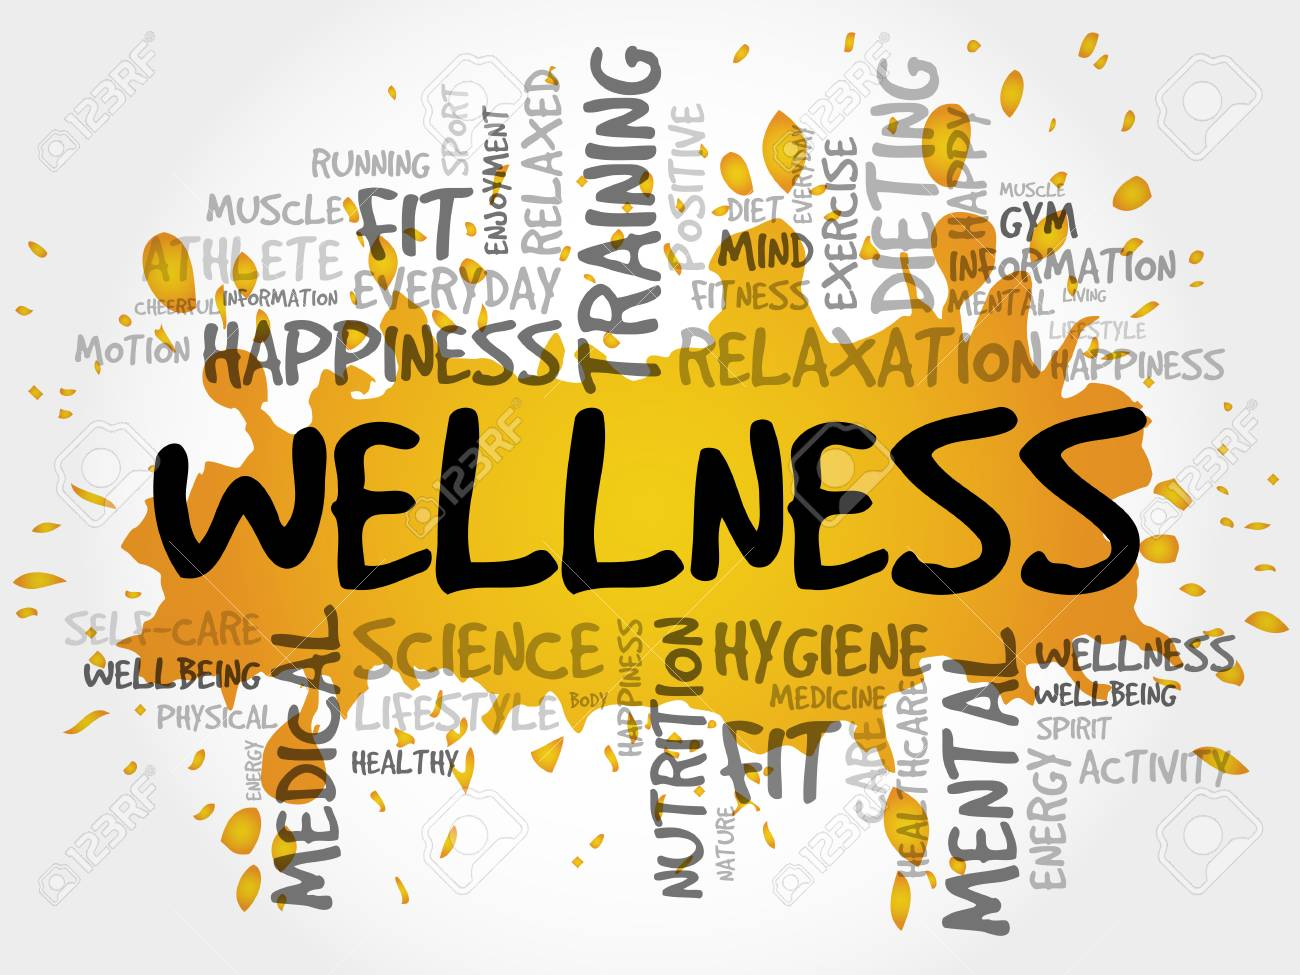 WELLNESS Word Cloud Collage, Health Concept Background Royalty Free  Cliparts, Vectors, And Stock Illustration. Image 79828090.